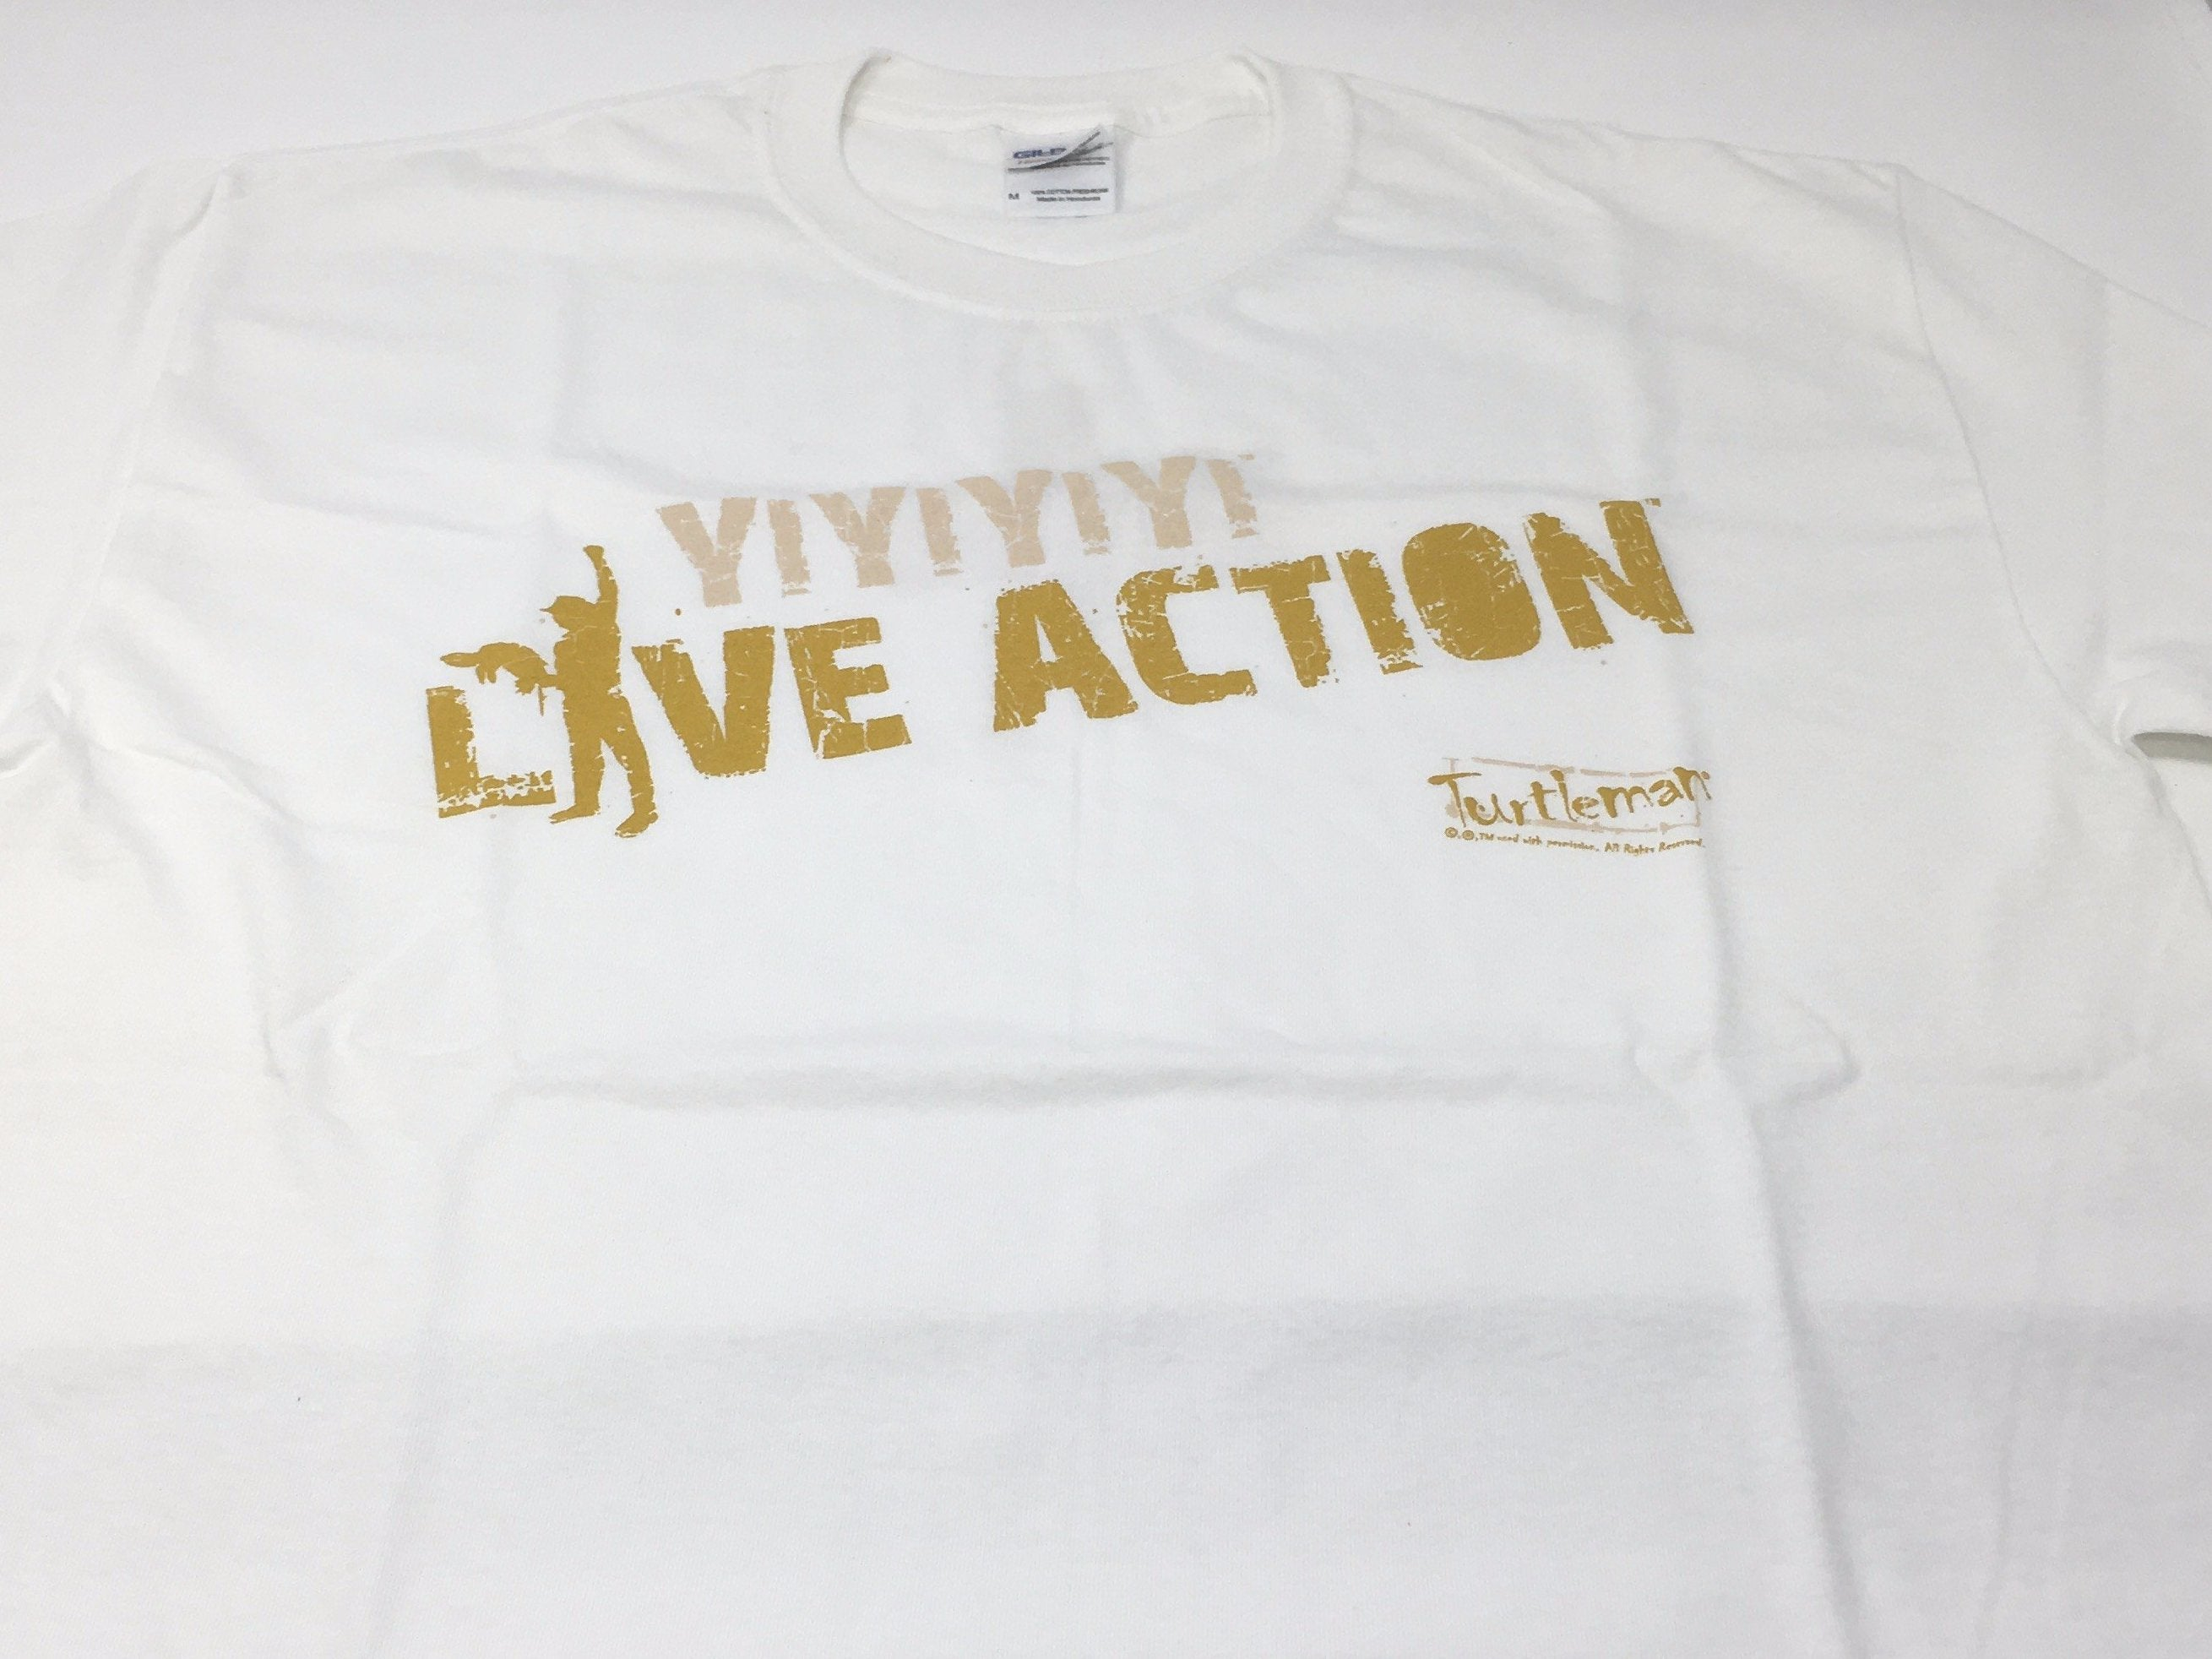 TURTLEMAN YIYIYI LIVE ACTION WHITE T-SHIRT